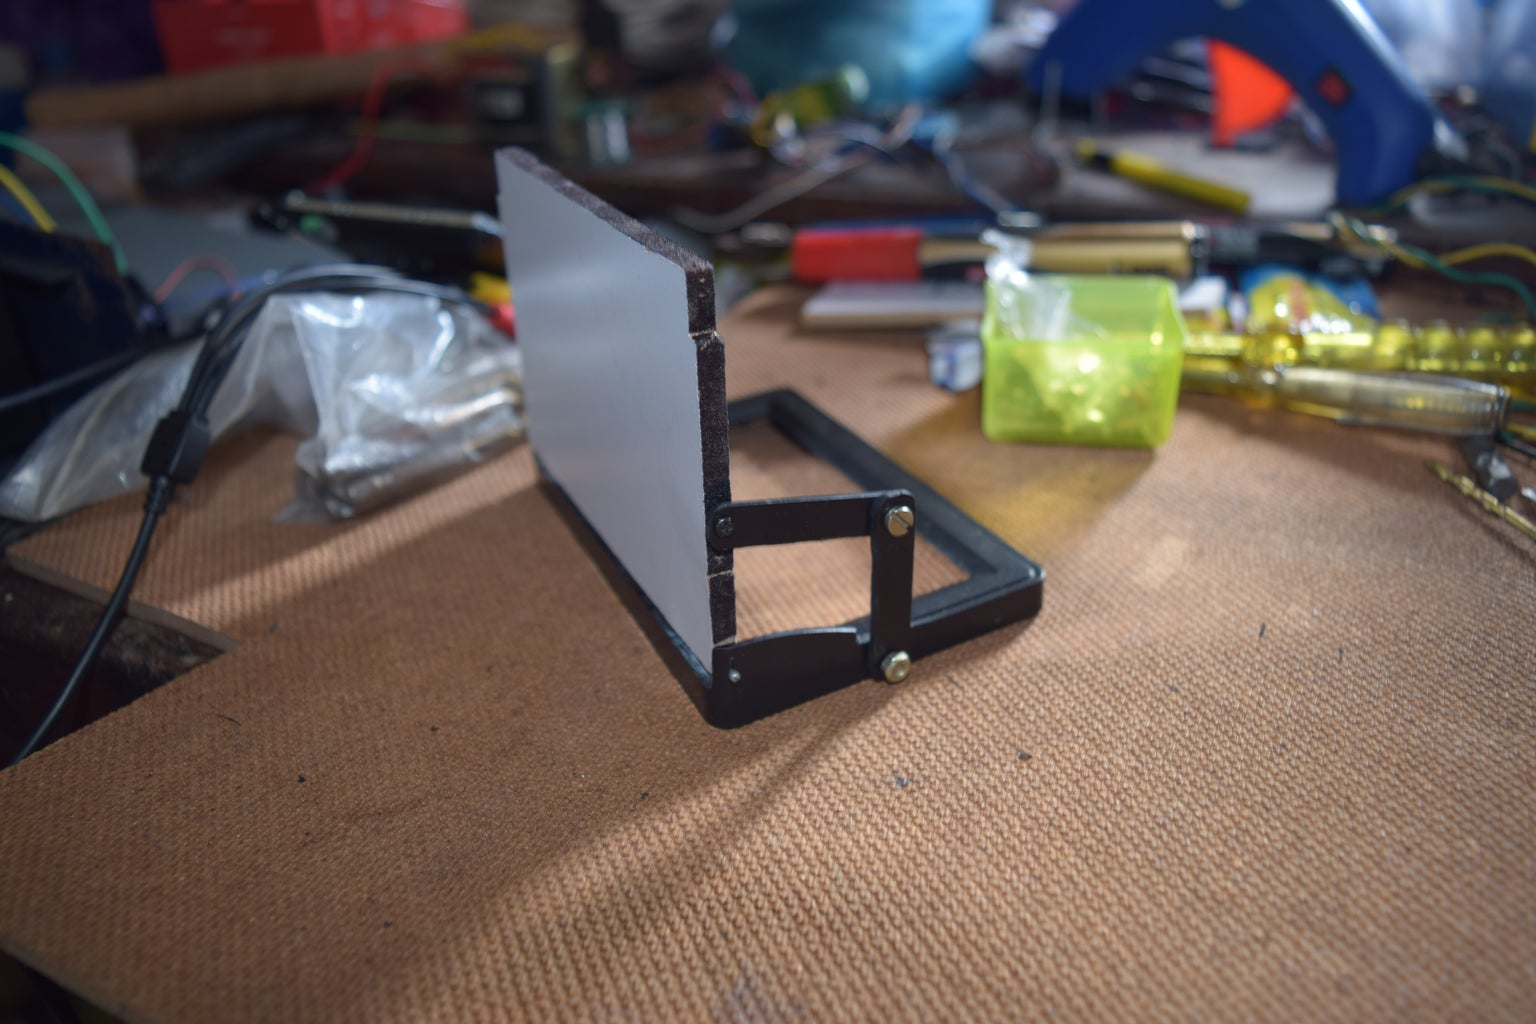 Building the Support for Mirror Adjustment